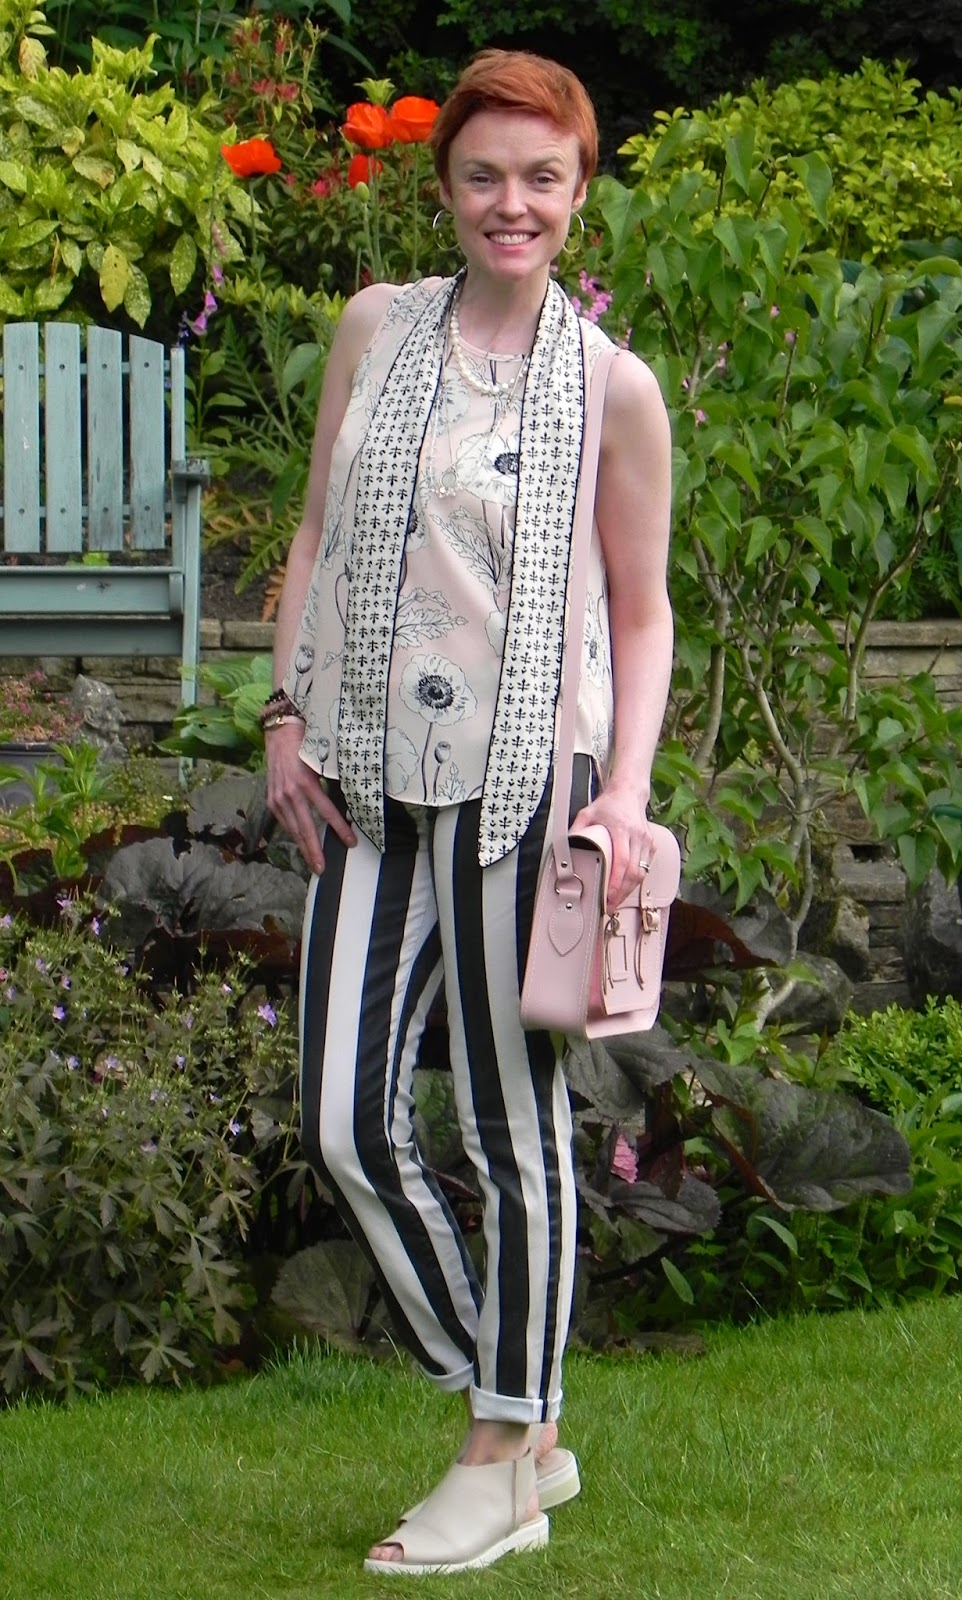 Black, white, pink, striped trousers